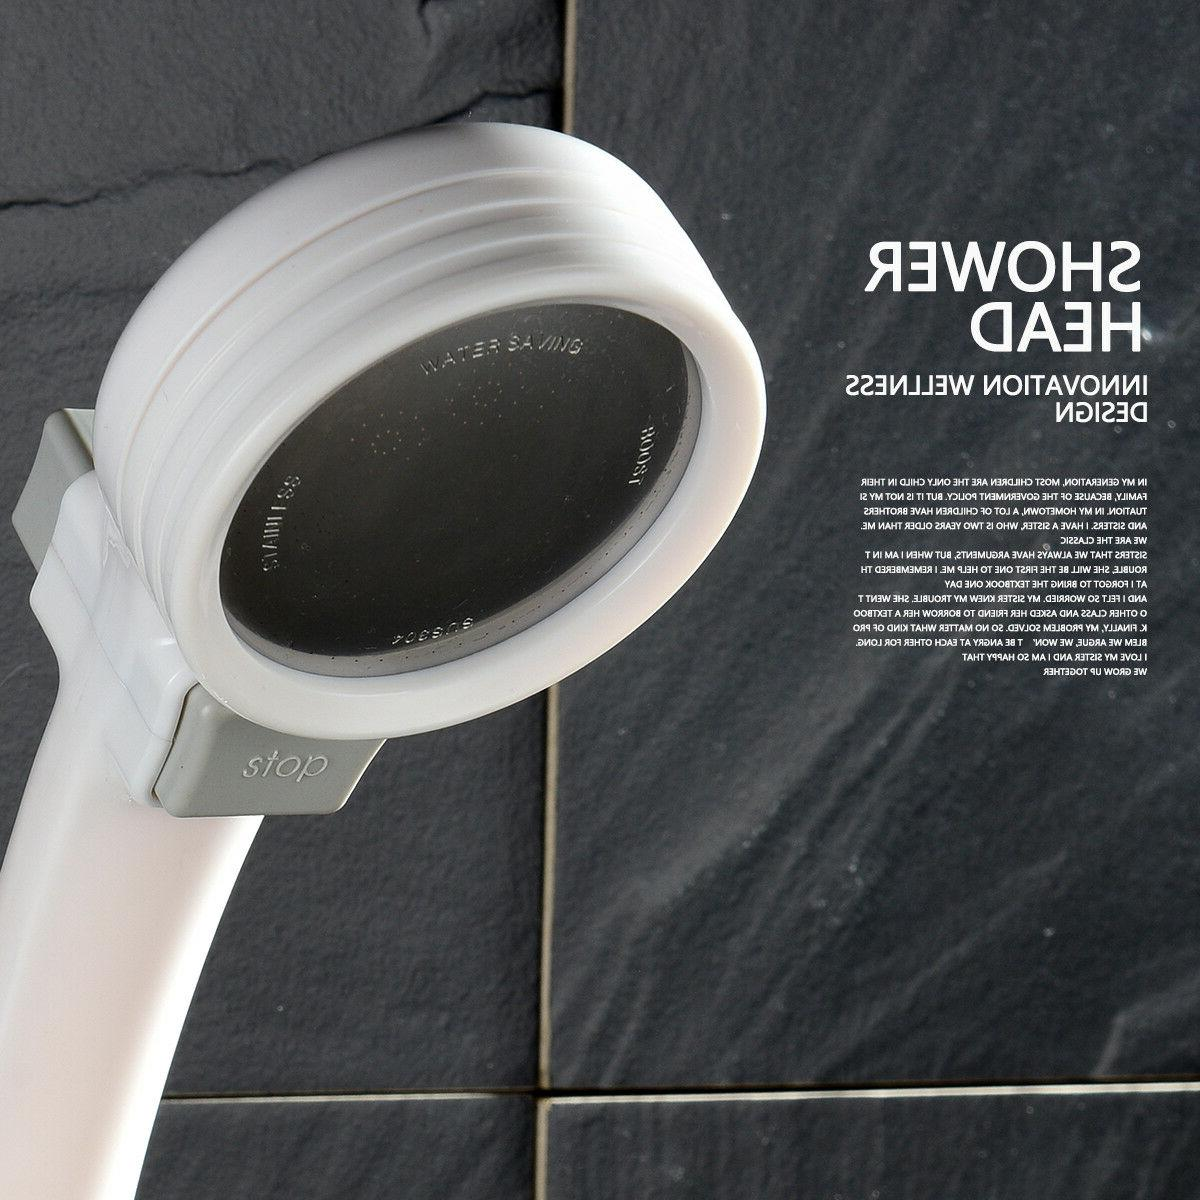 Ciencia Shower a Hand Only,